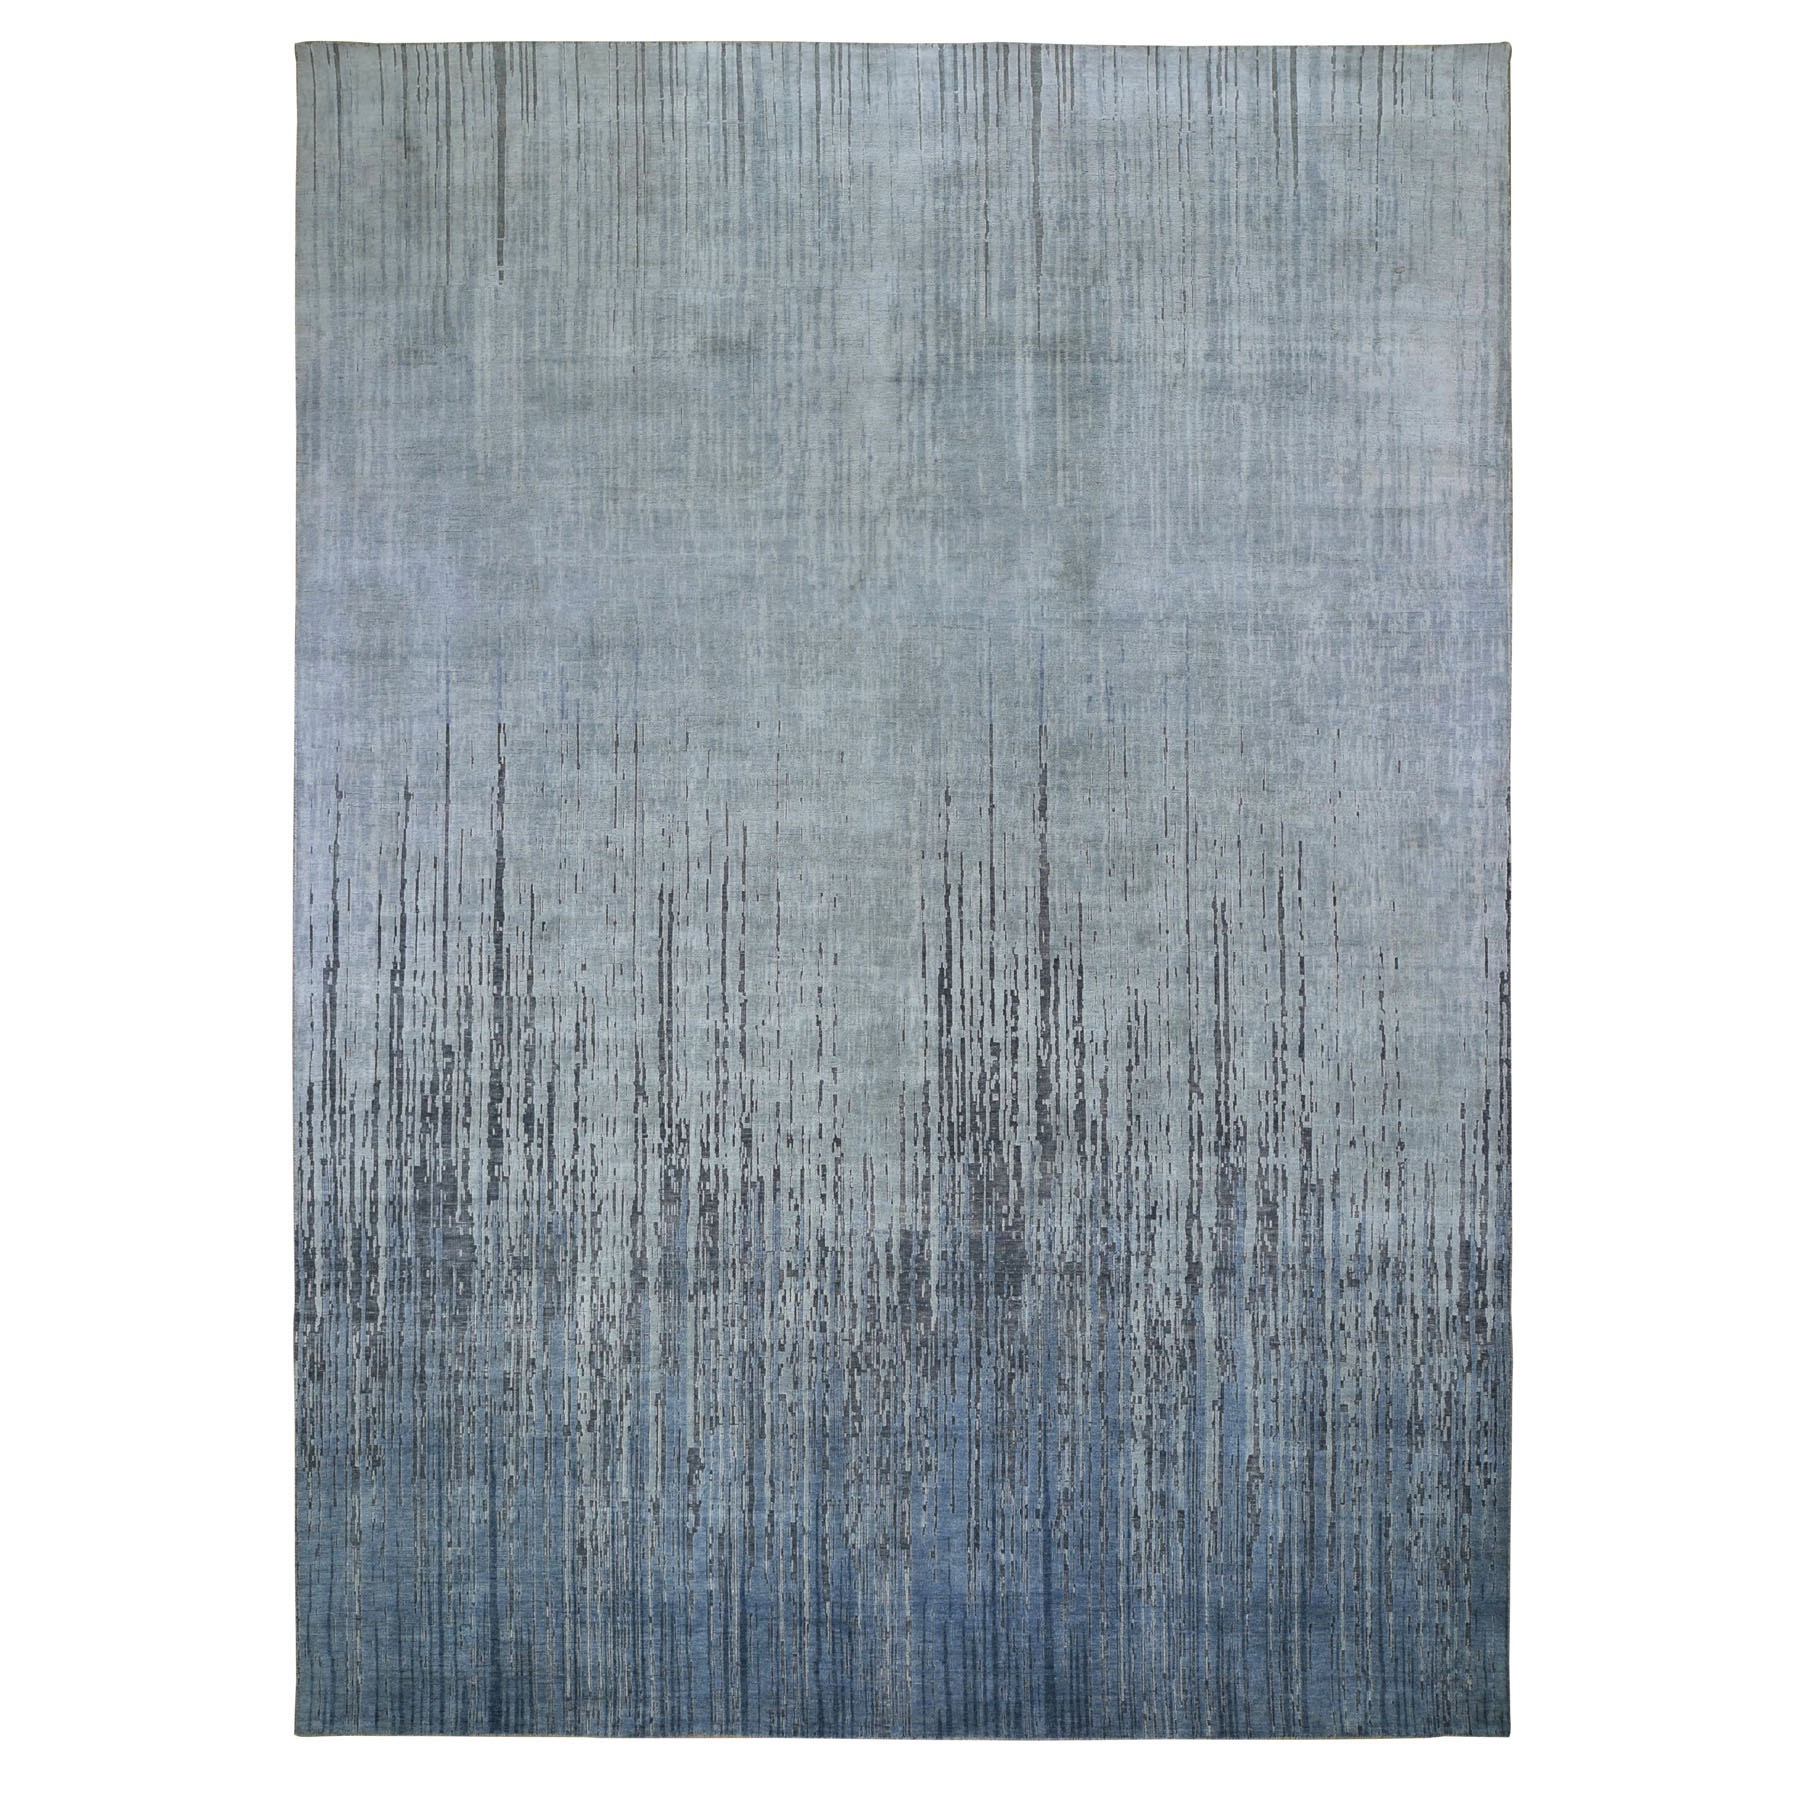 Mid Century Modern Collection Hand Knotted Grey Rug No: 0198156